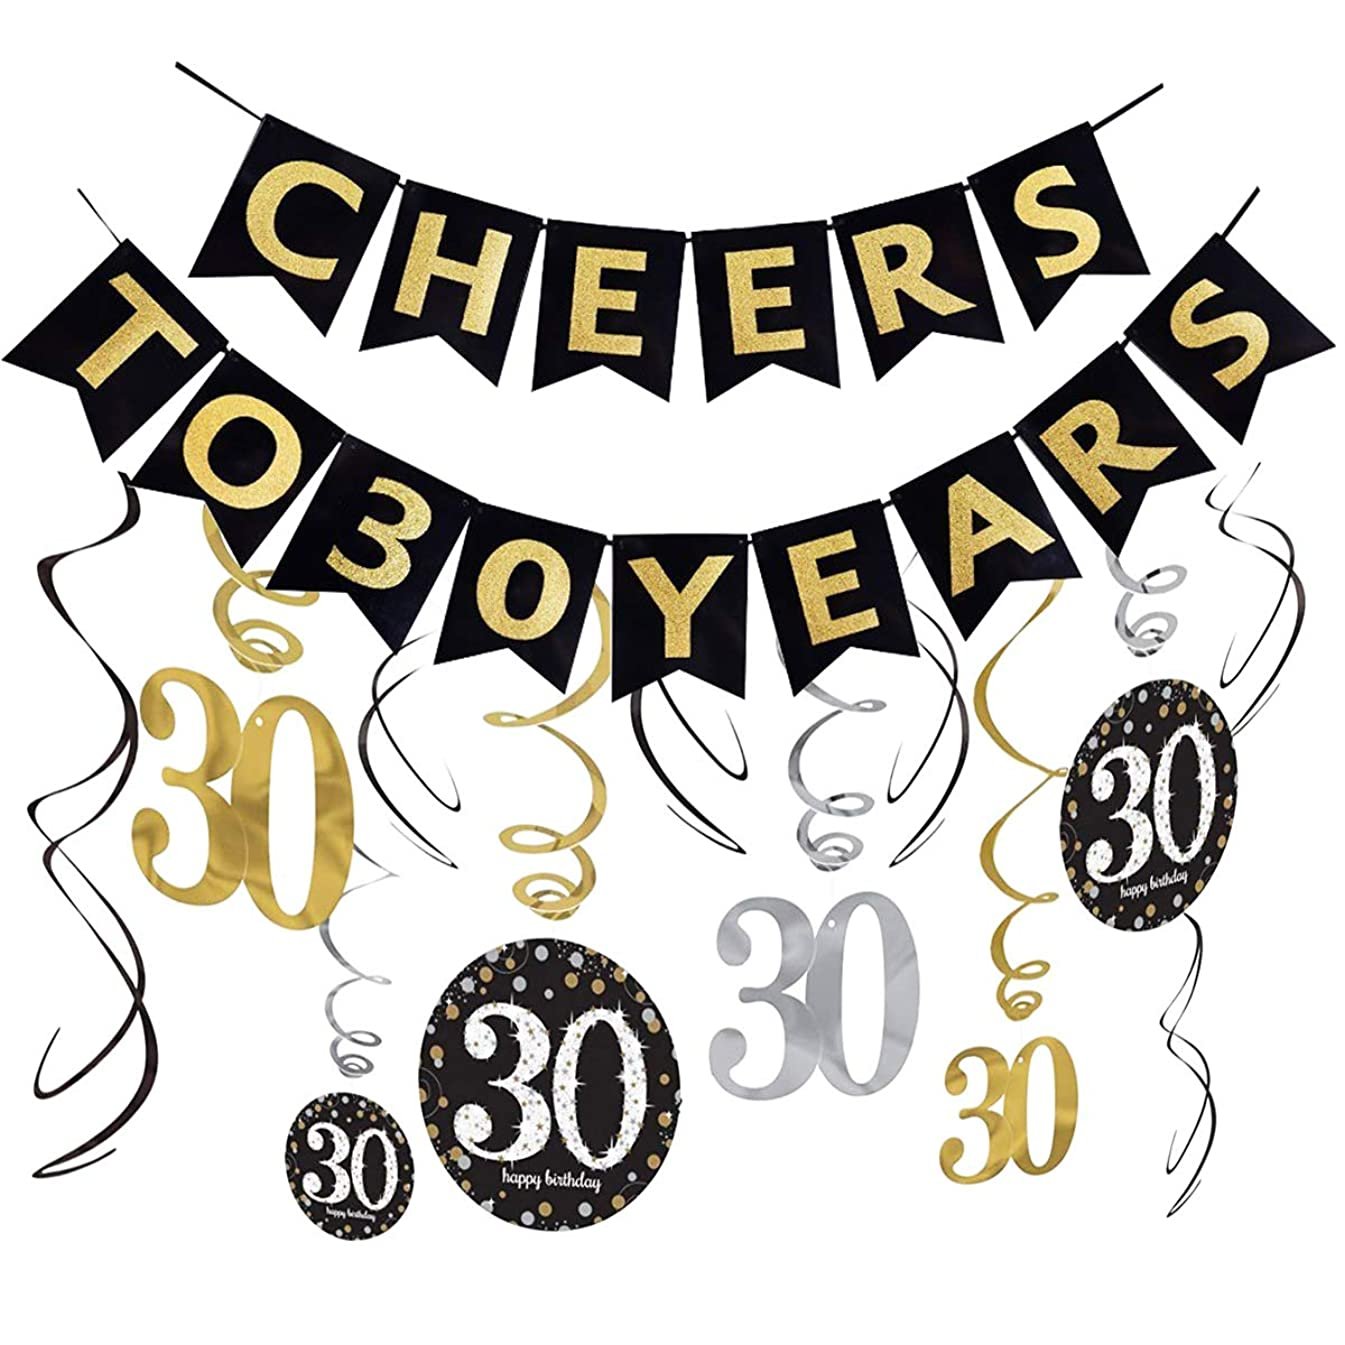 30th Birthday Decorations Kit(Already Assembled) Cheers to 30 Years Banner Bunting,Sparkling Celebration Hanging Swirls,Gold Silver Black 30 Years Old Party Supplies,30th Happy Birthday Decorations